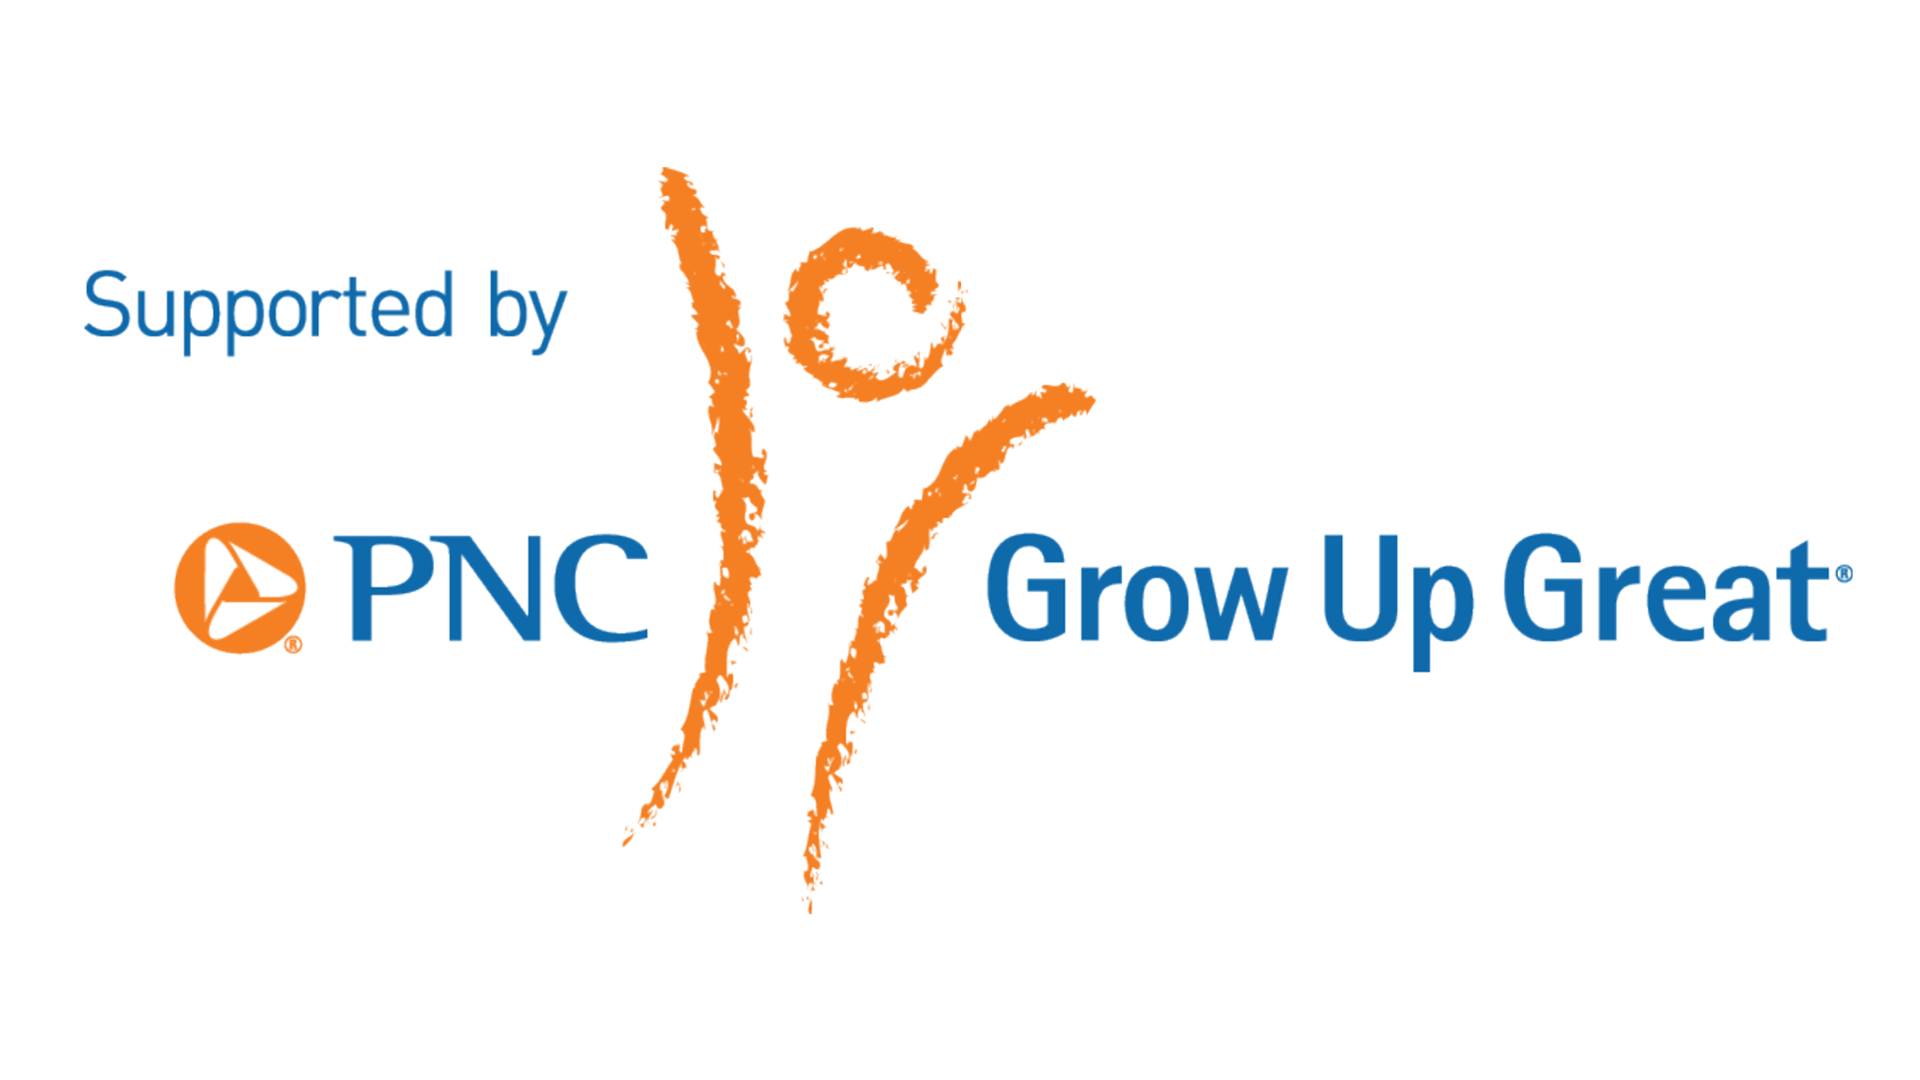 Supported by PNC Grow Up Great